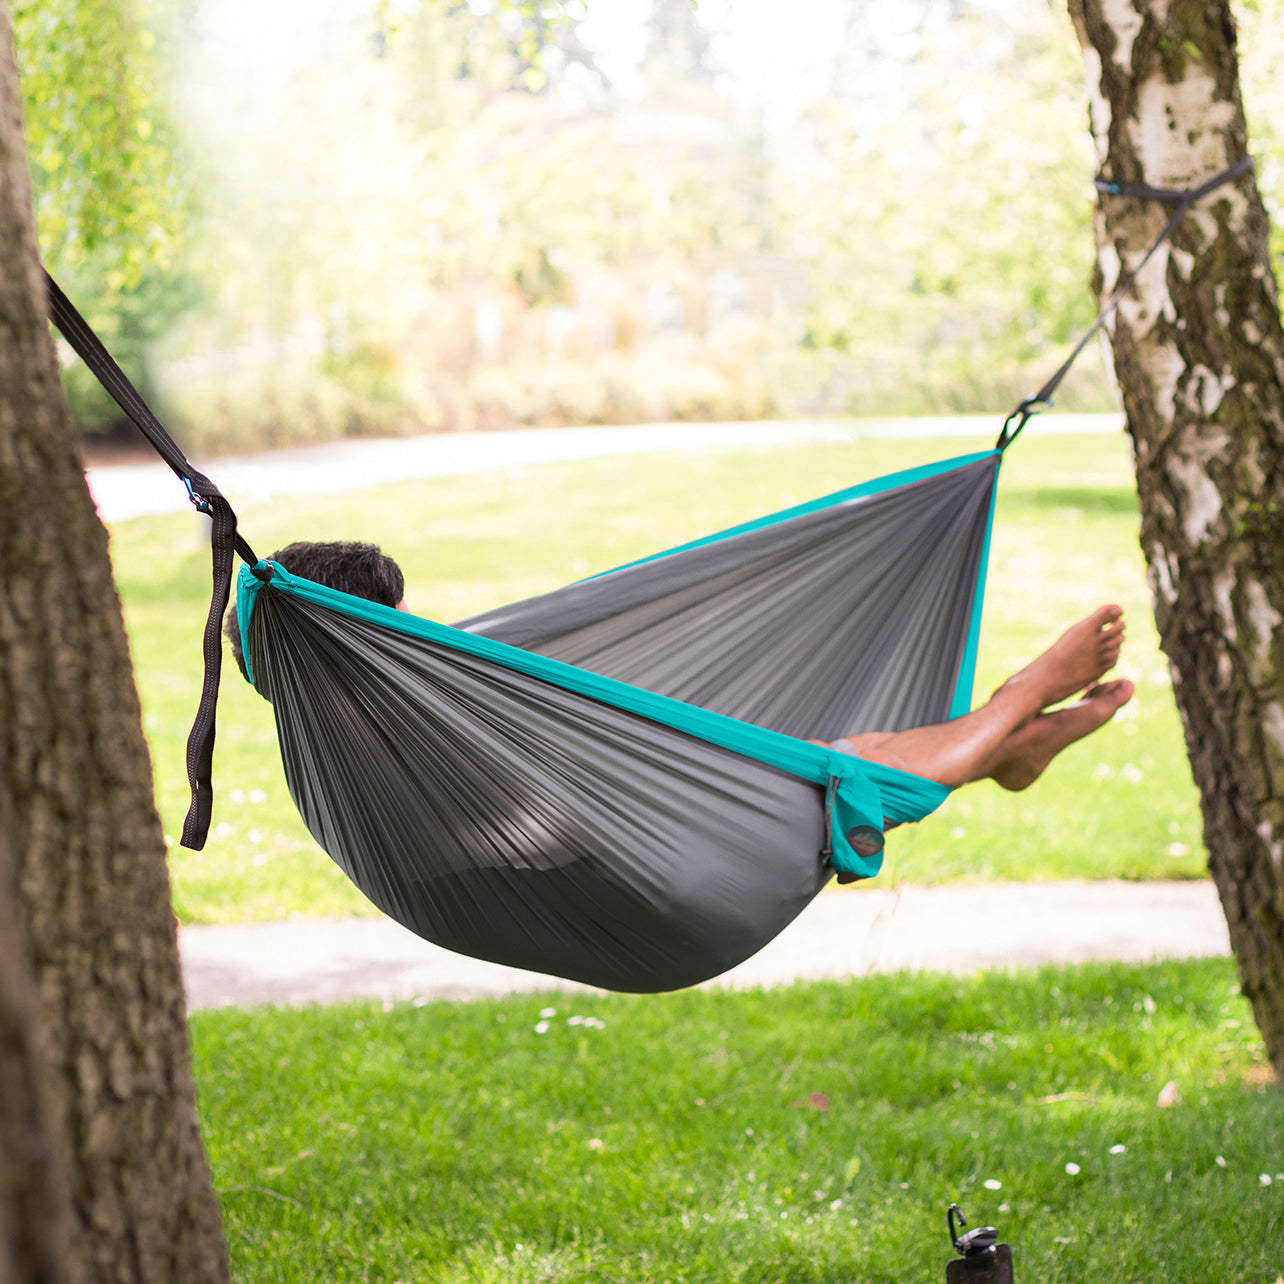 Youphoria Outdoors Portable Camping Ultralight Hammock hanging from trees.